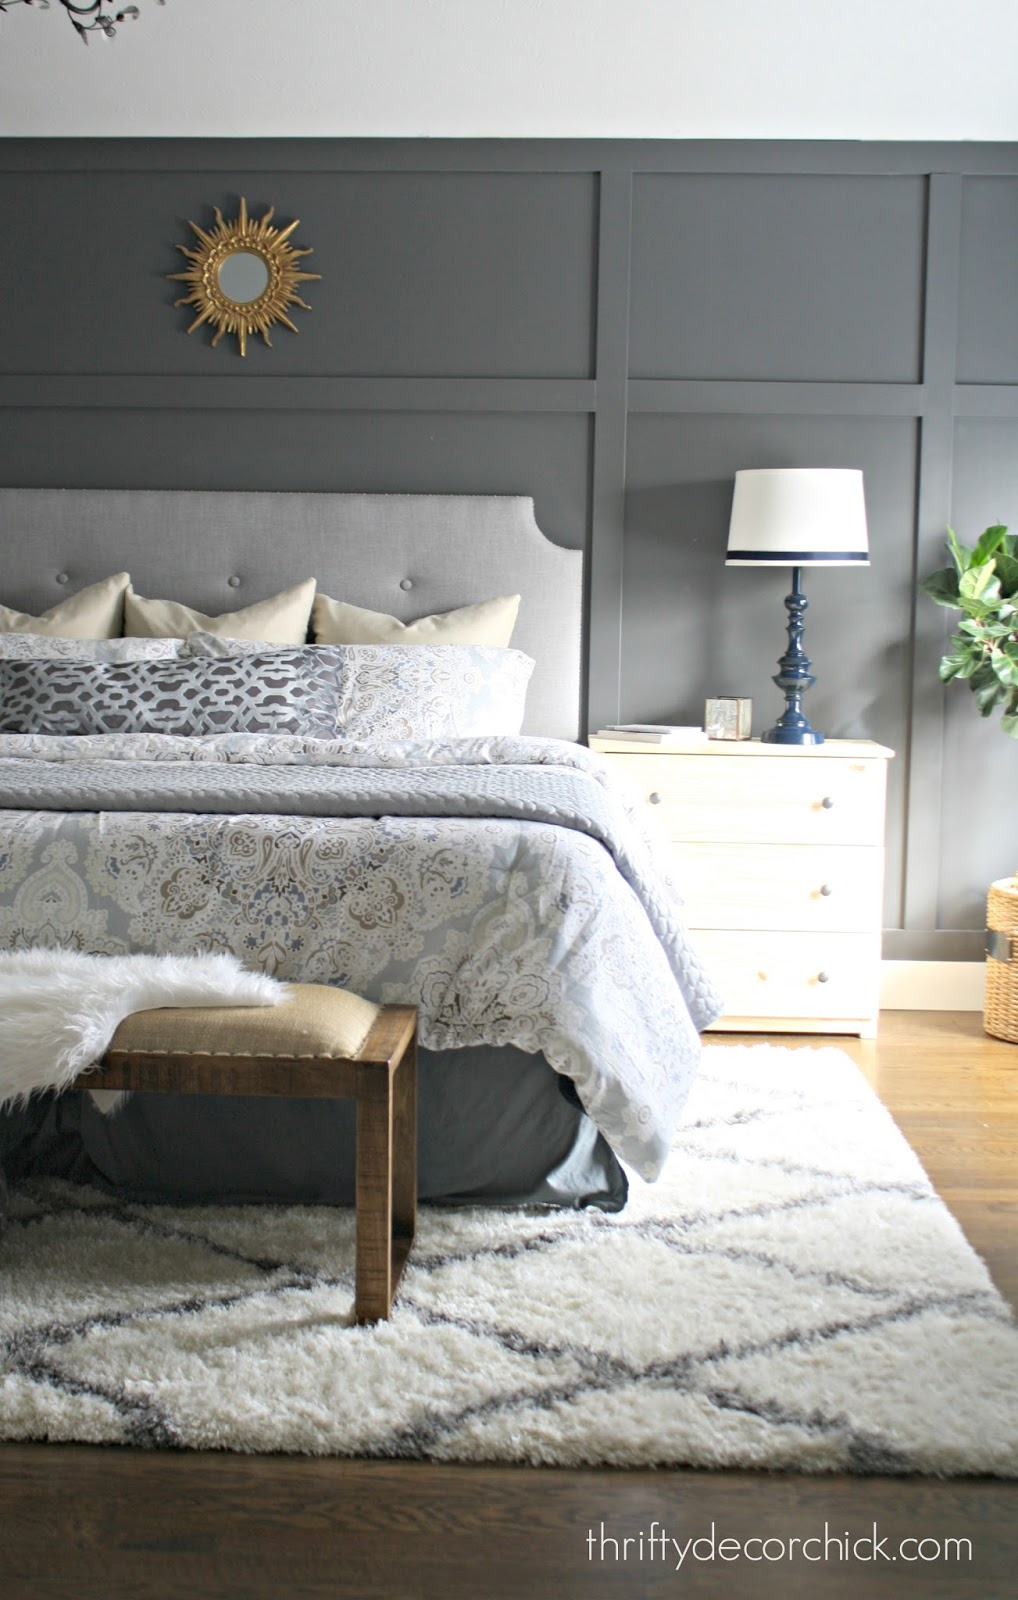 DIY tufted headboard for under $100